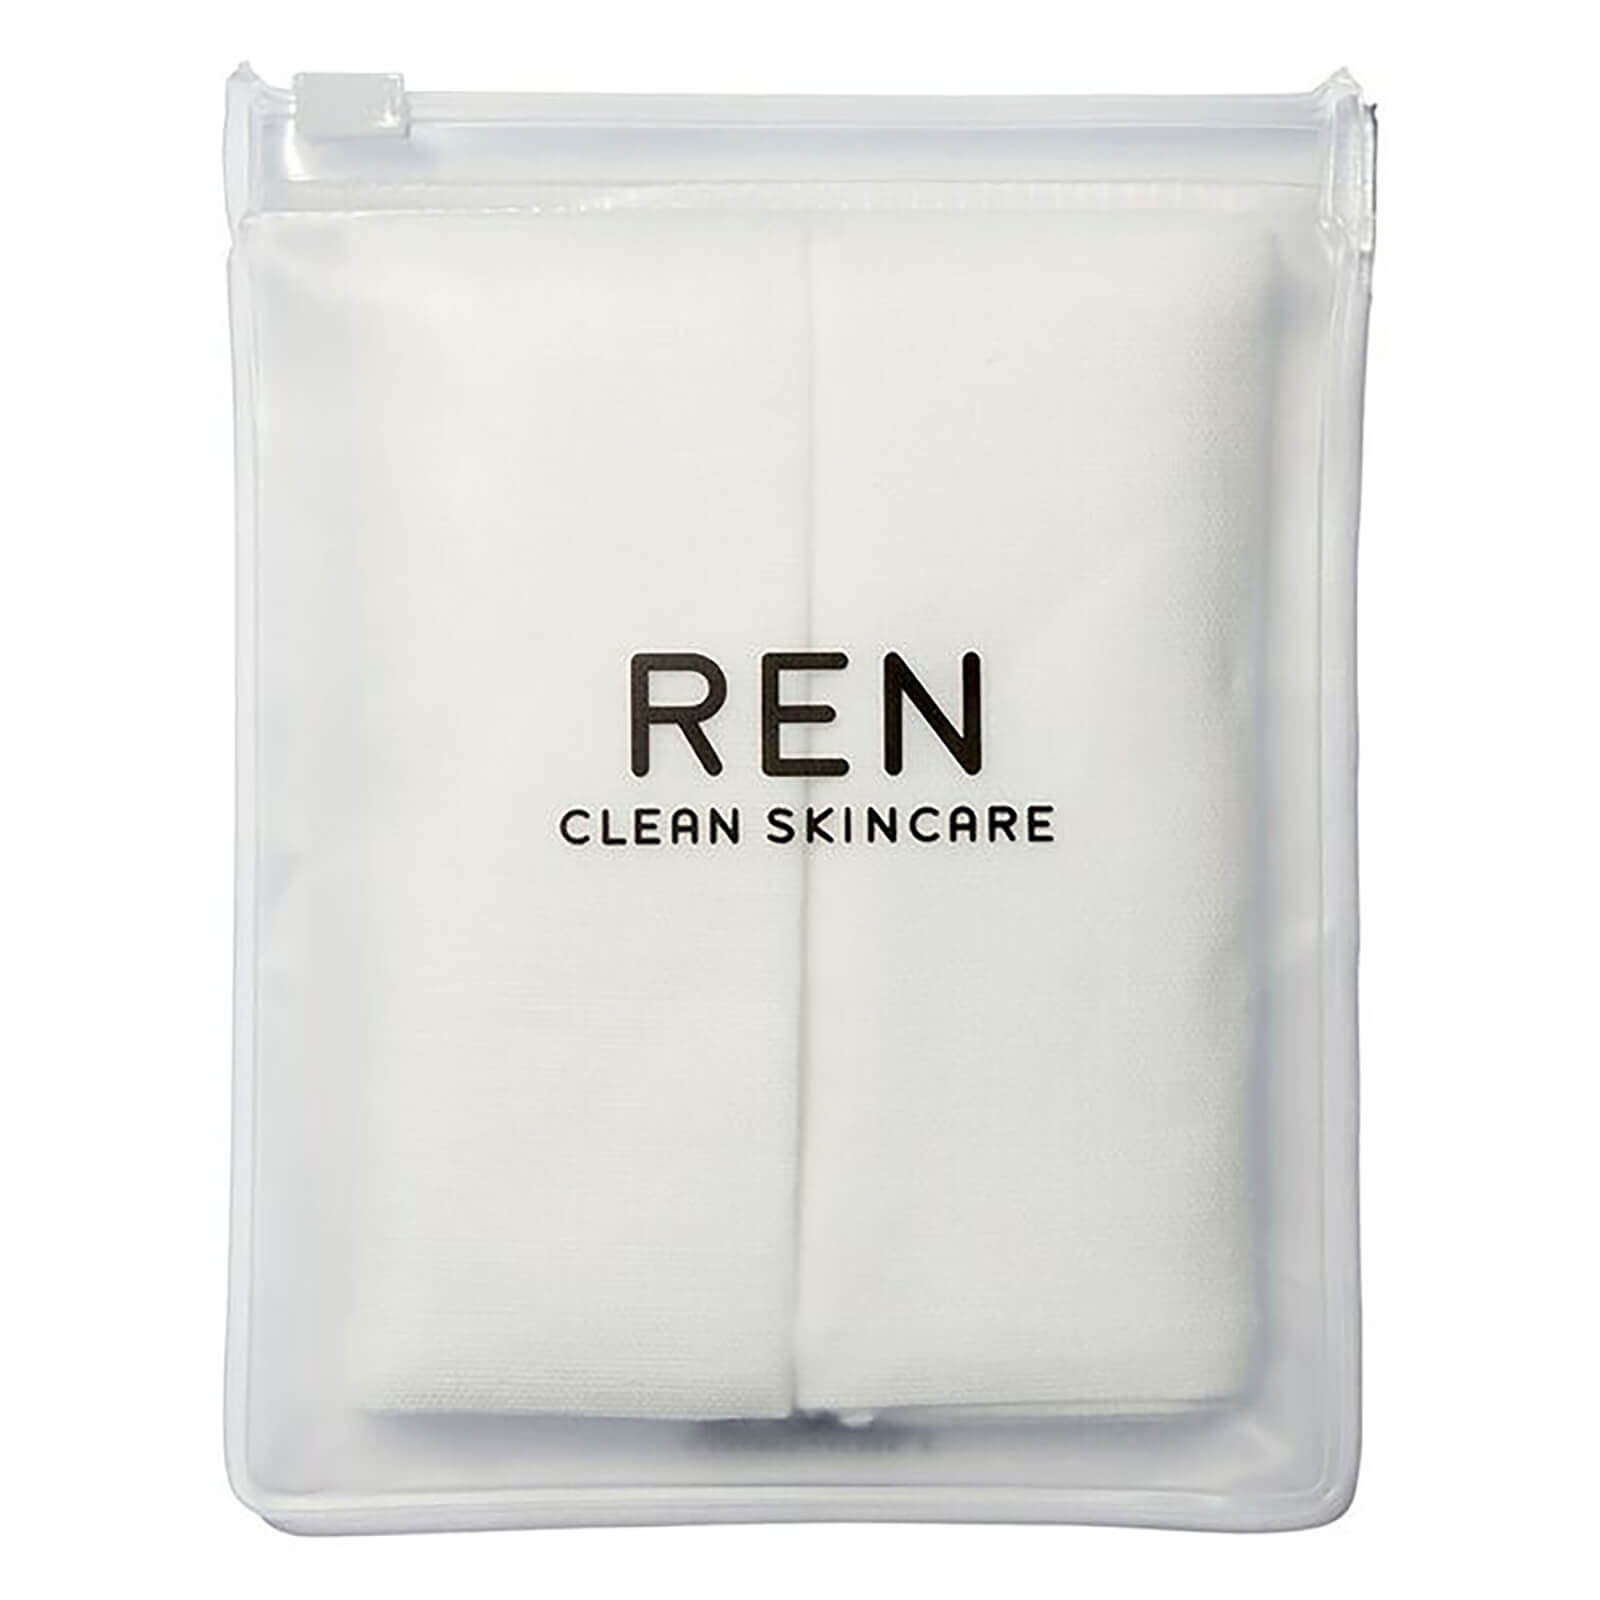 clean skincare REN cloth